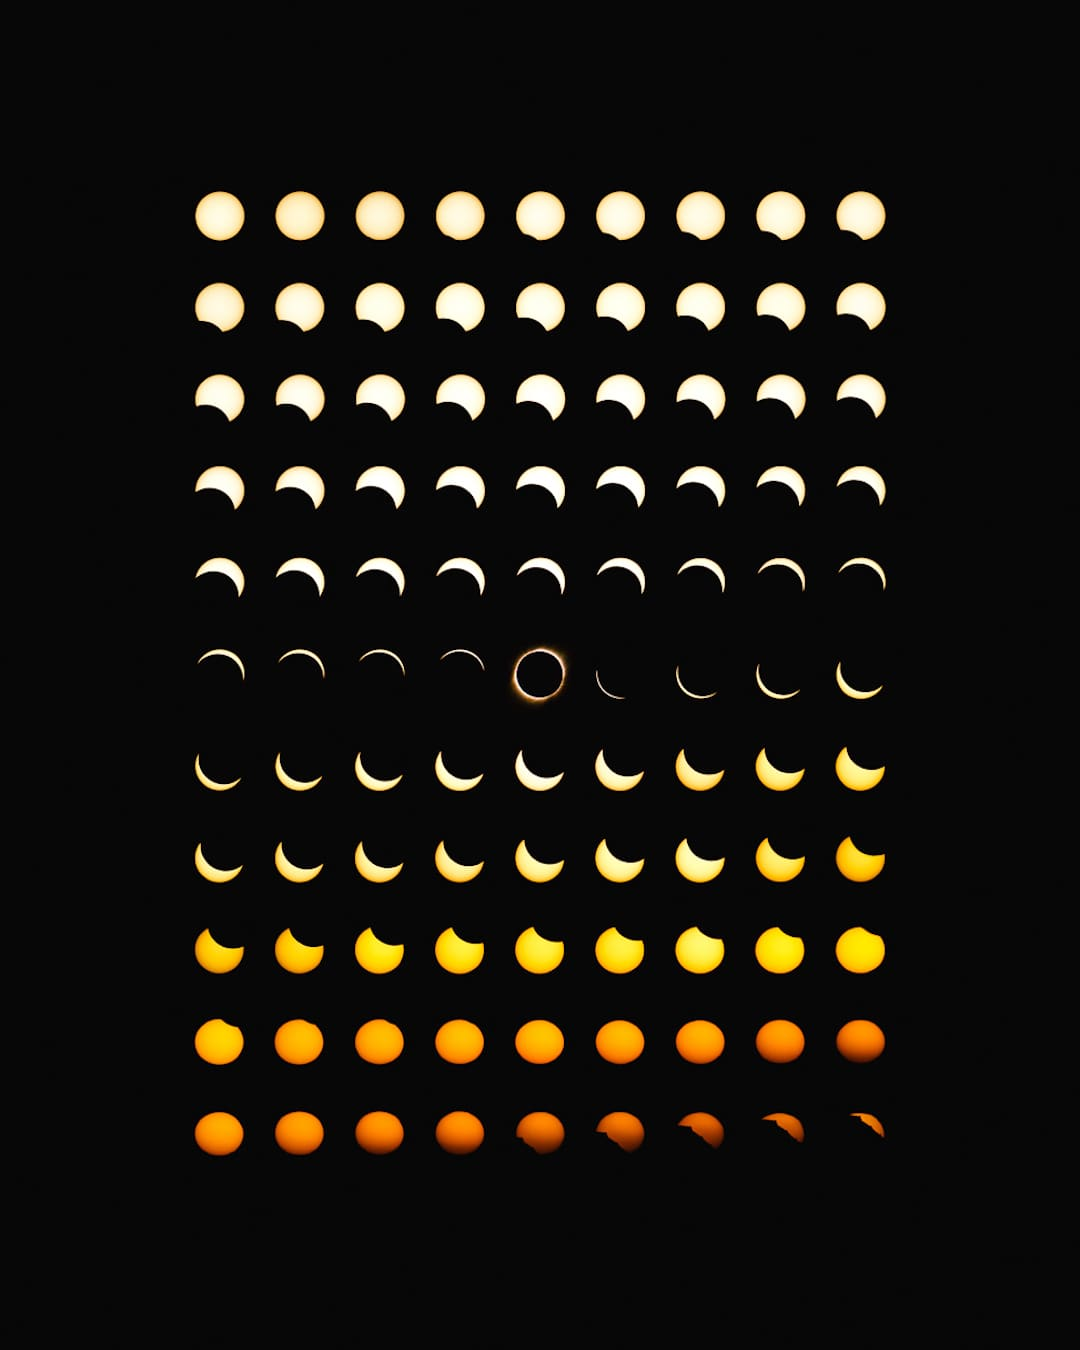 Solar Eclipse Photo Composites by Dan Marker-Moore